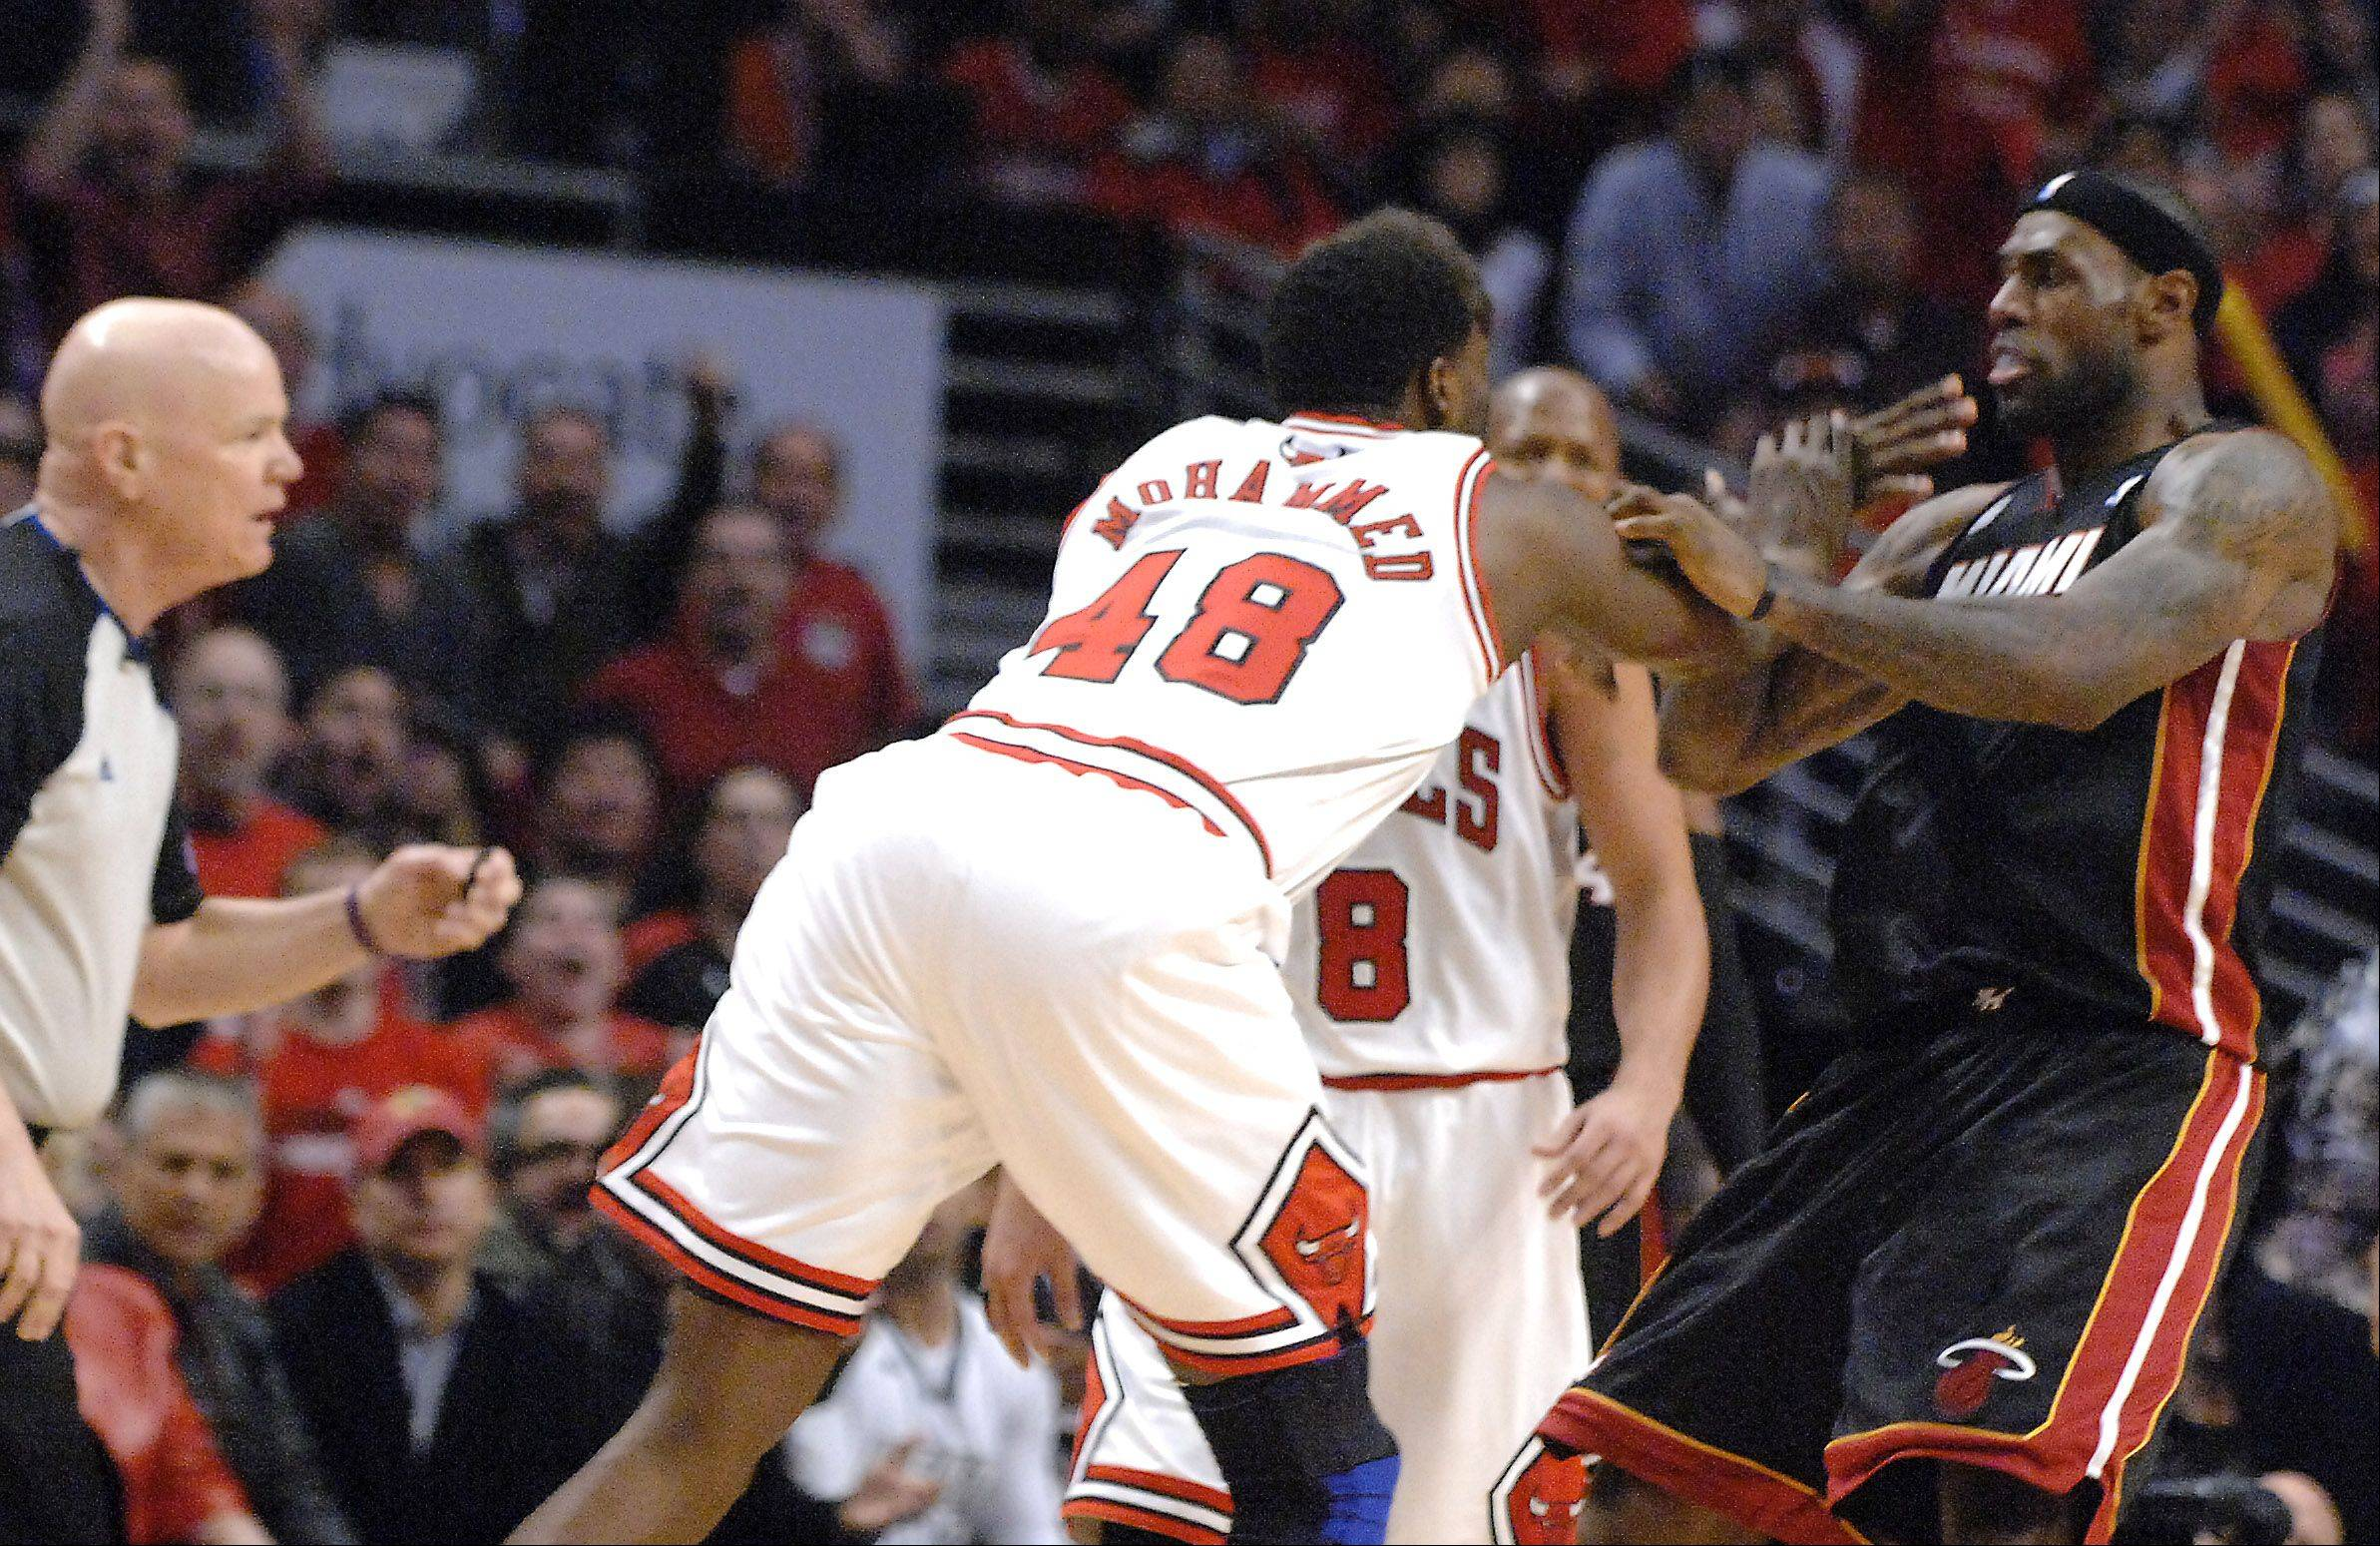 Bulls center Nazr Mohammed (48) shoves Miami Heat small forward LeBron James (6) and gets ejected during game 3 of the NBA Eastern Conference semifinals at the United Center in Chicago Friday.